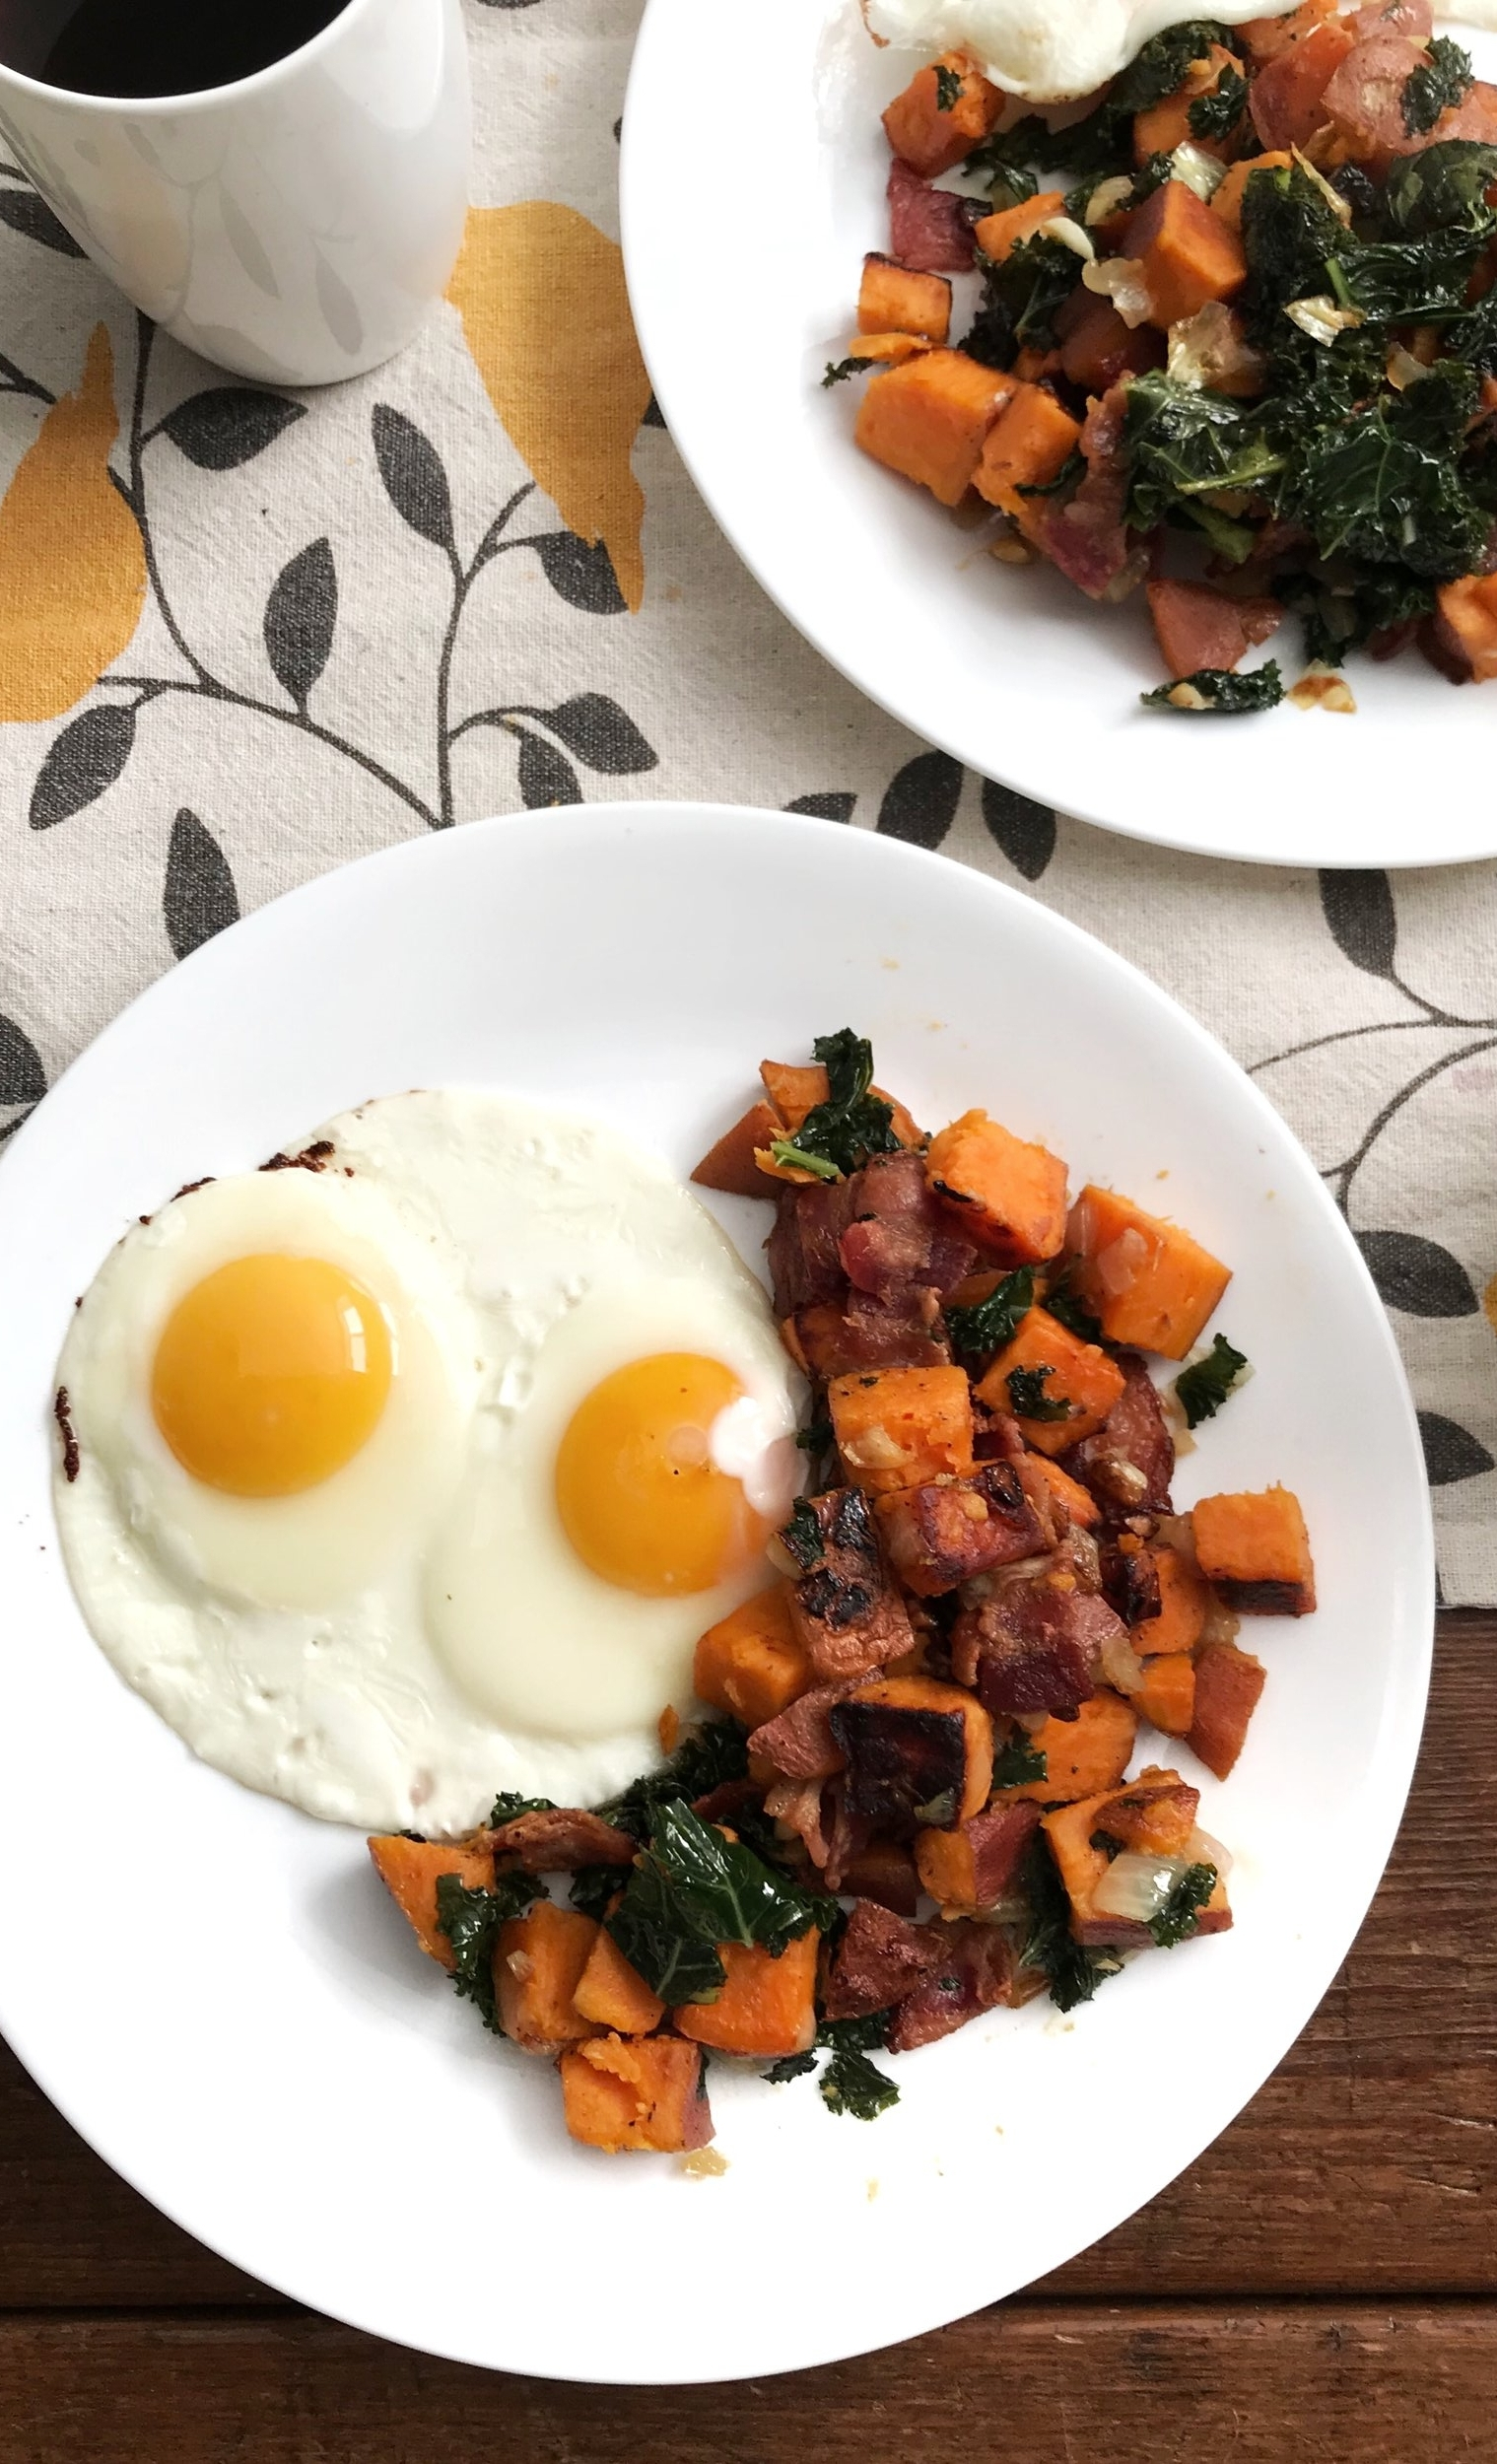 THE BEST Sweet Potato Hash - Ingredients:1 small sweet potato/ half large sweet potato2 cloves garlic1/4 onion1-2 cups washed kaleOptional: organic/ vegan sausage, tofu, bacon, etc.Directions:Heat a skillet with extra virgin coconut oil, add diced sweet potato & let cook for 10-15 minutes on medium-high heat, stirring often. Half way through the cooking time of the potatoes, add garlic & onion.If you choose to add meat/ vegan alternative, cook in a separate skillet and add when the mixture is nearly cooked.When the sweet potato is bright, and a fork can easily penetrate through, add kale and cook covered for 2-3 minutes. Season with fresh herbs, salt and pepper & serve!